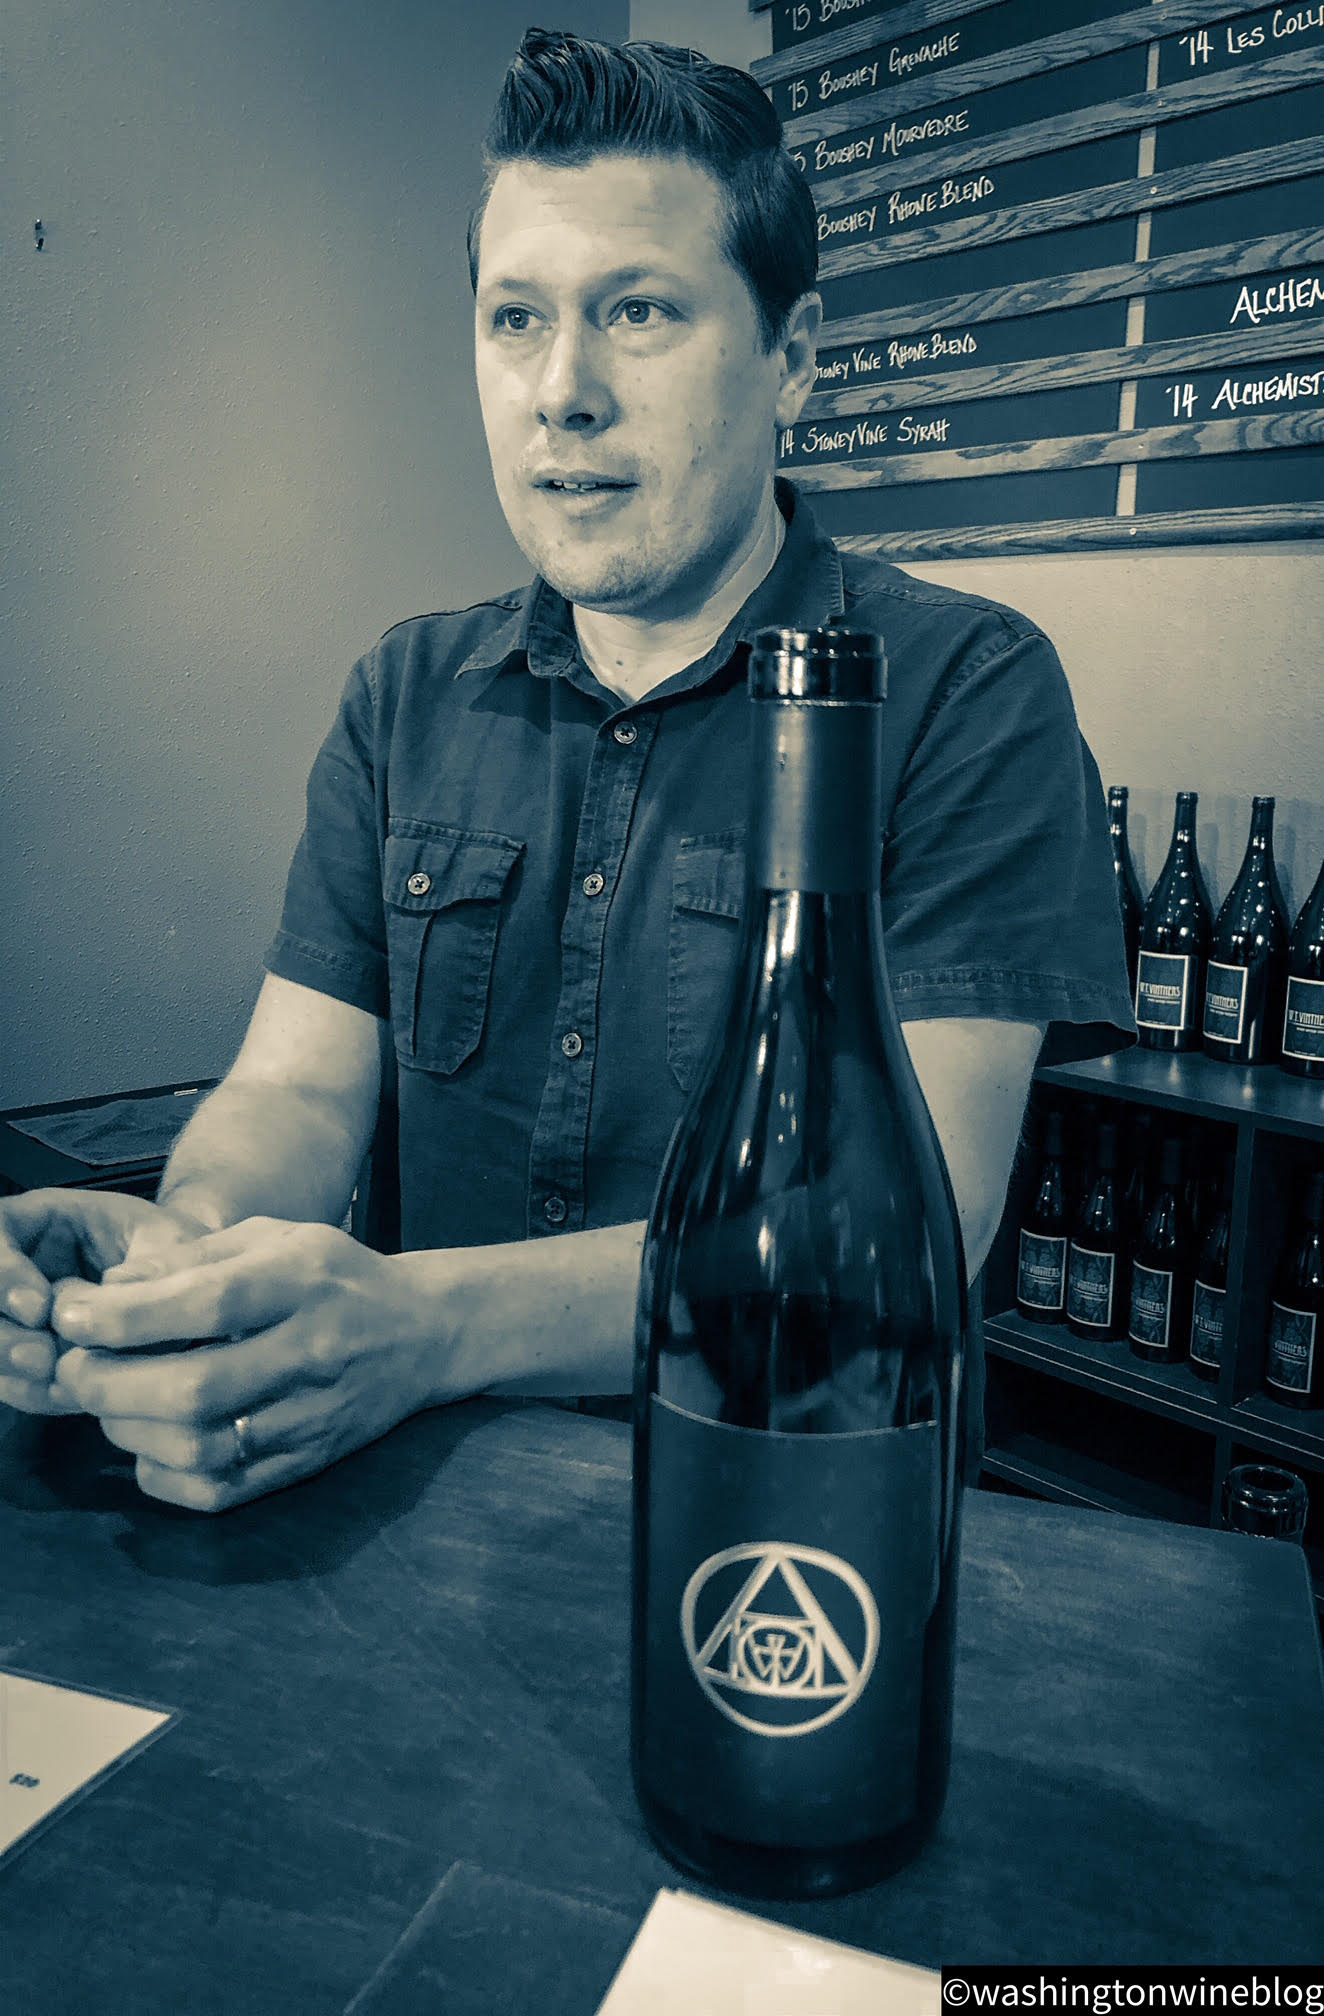 Here we have one of the great talents in Washington wine, advanced sommelier and W.T. Vintners winemaker, Jeff Lindsay-Thorsen.